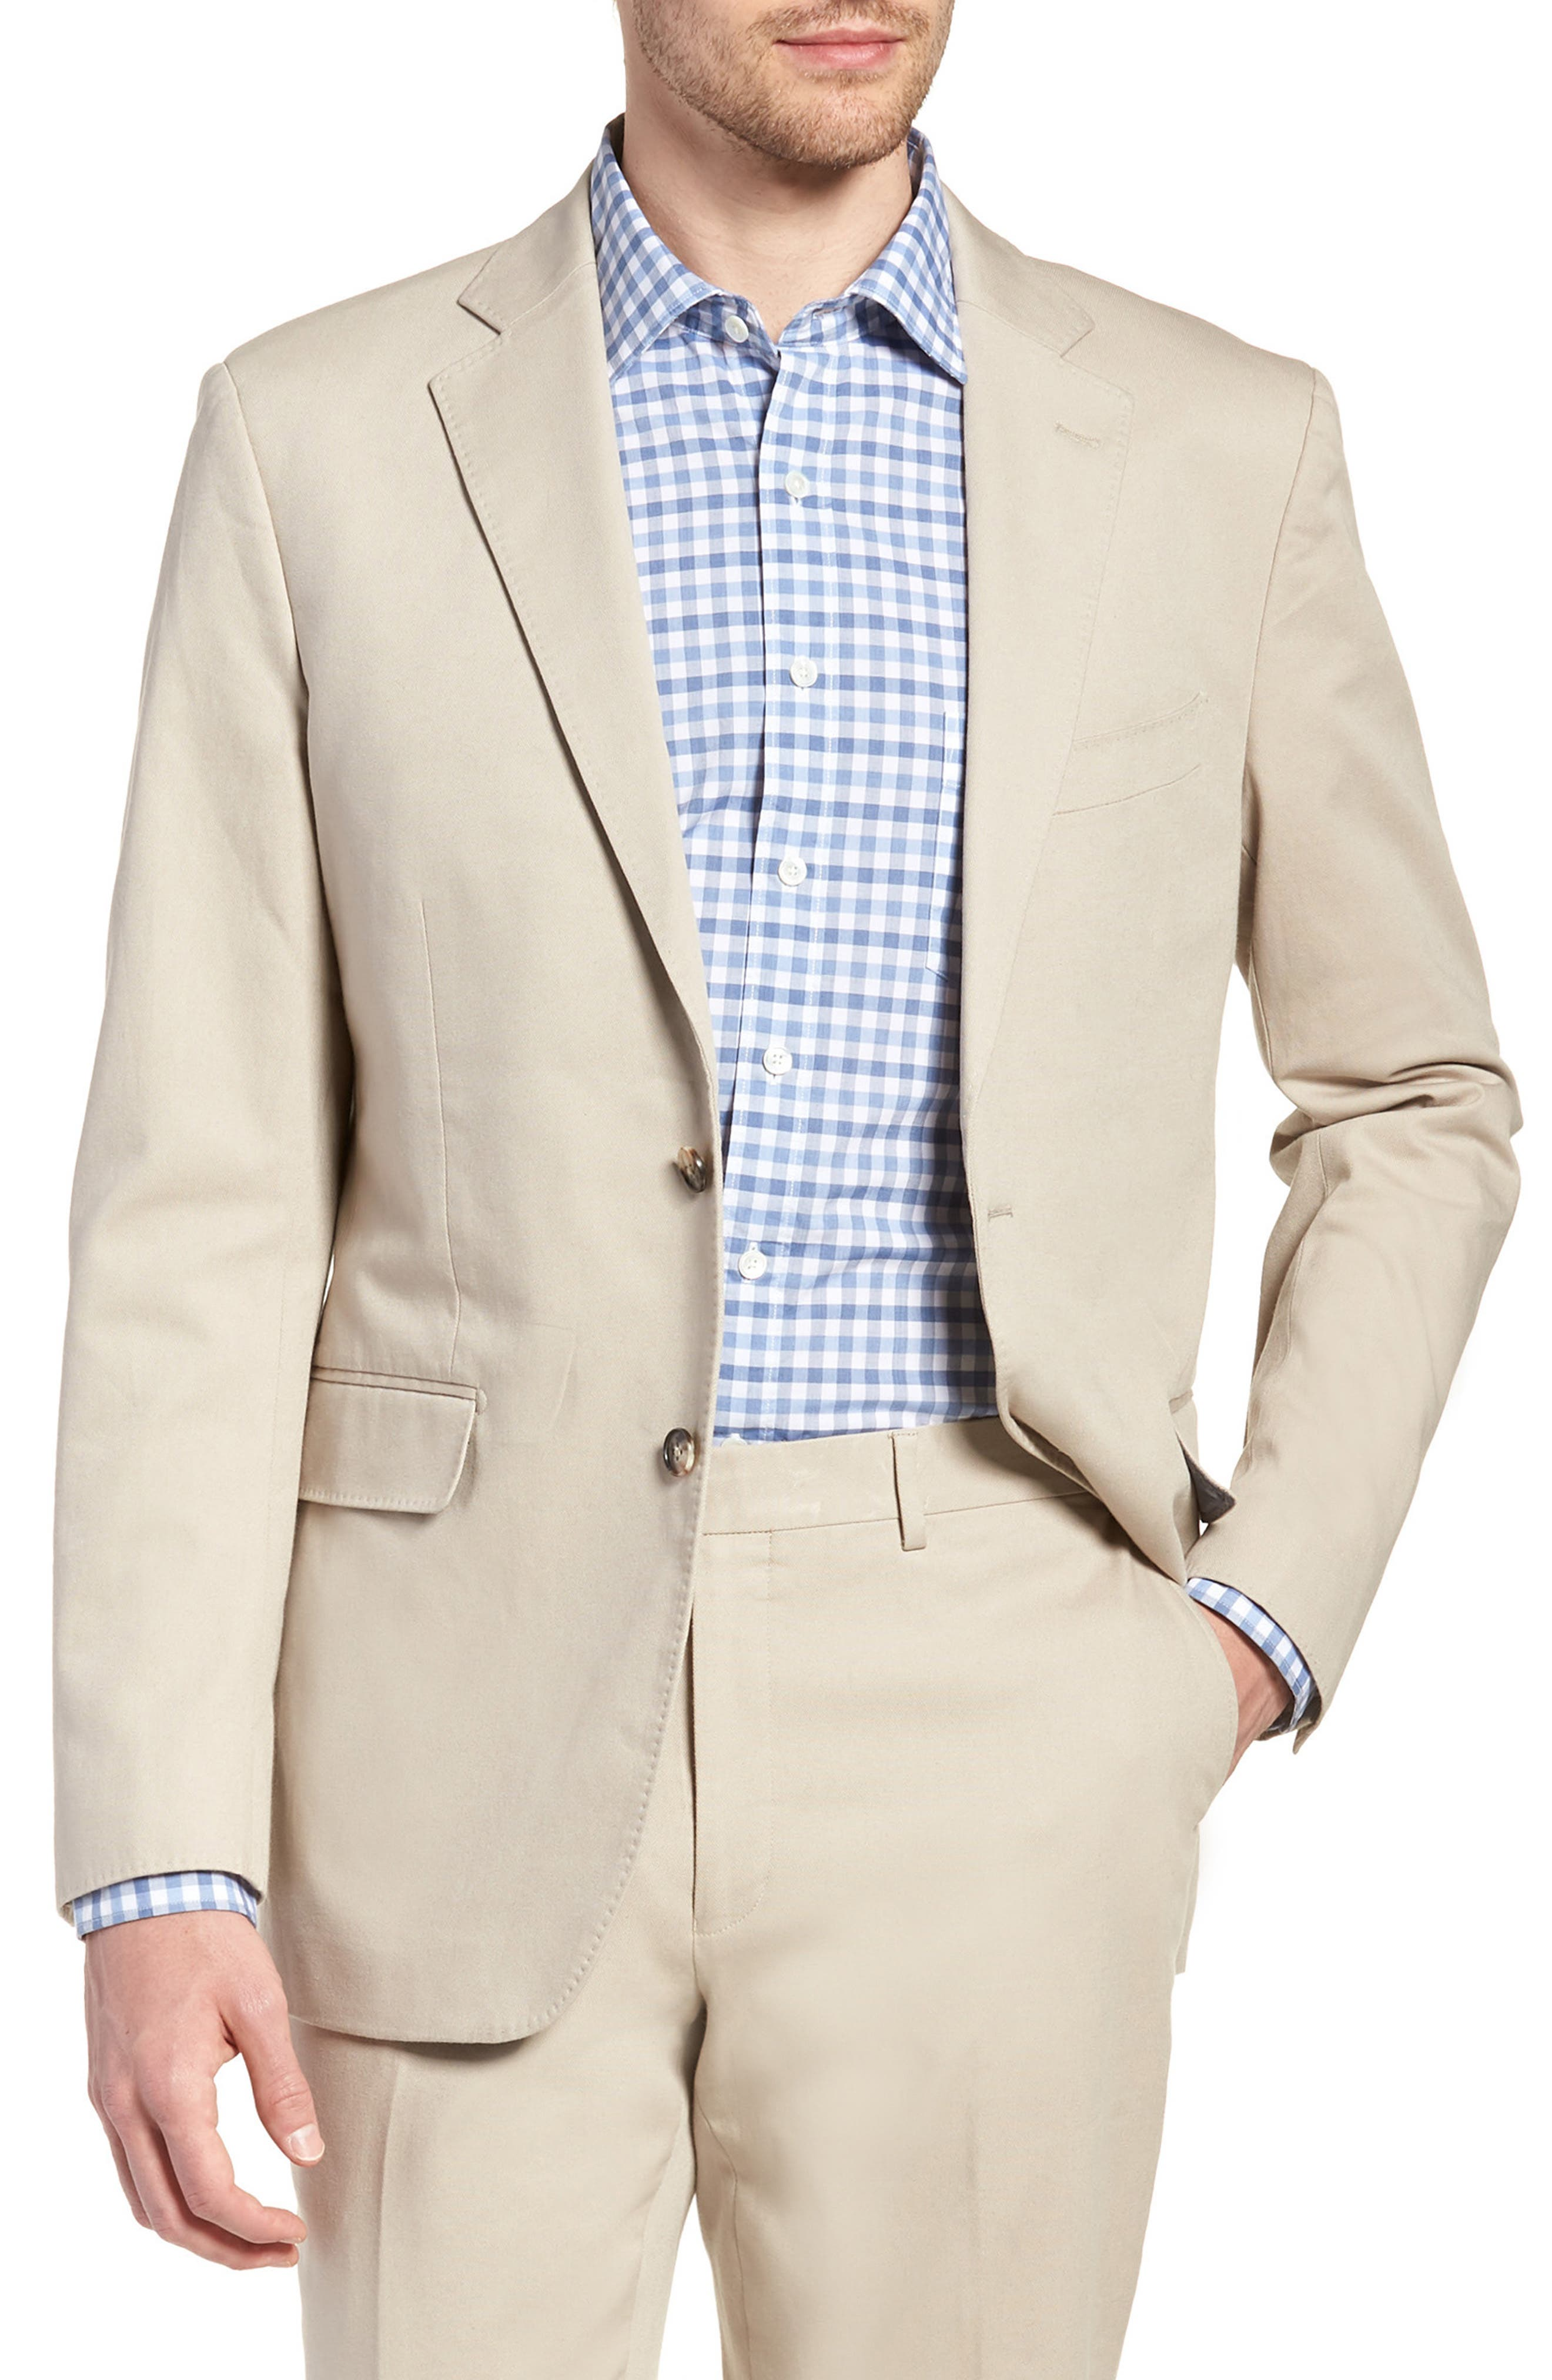 Finchley Regular Fit Sportcoat,                         Main,                         color, 102